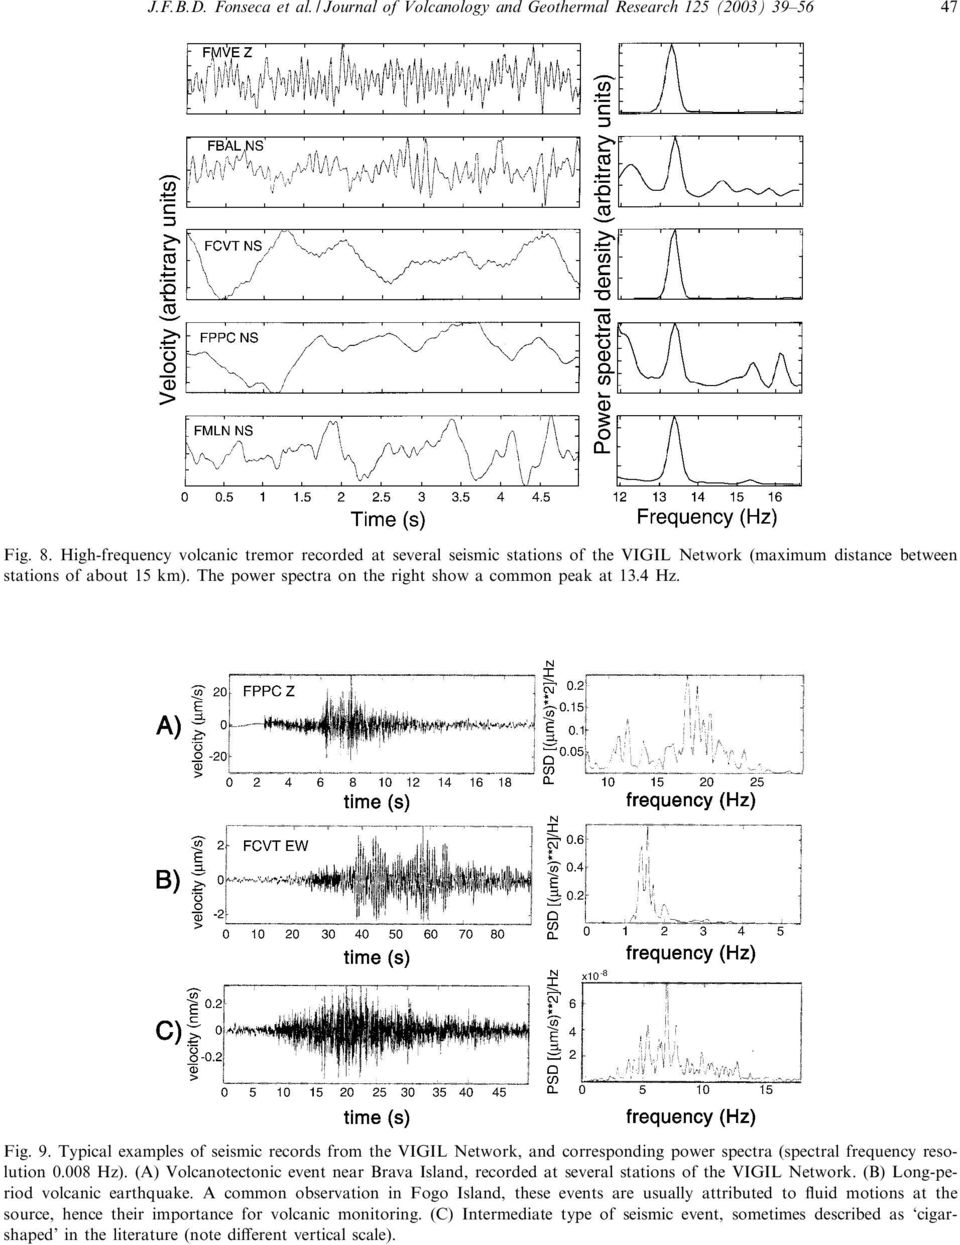 4 Hz. Fig. 9. Typical examples of seismic records from the VIGIL Network, and corresponding power spectra (spectral frequency resolution 0.008 Hz).